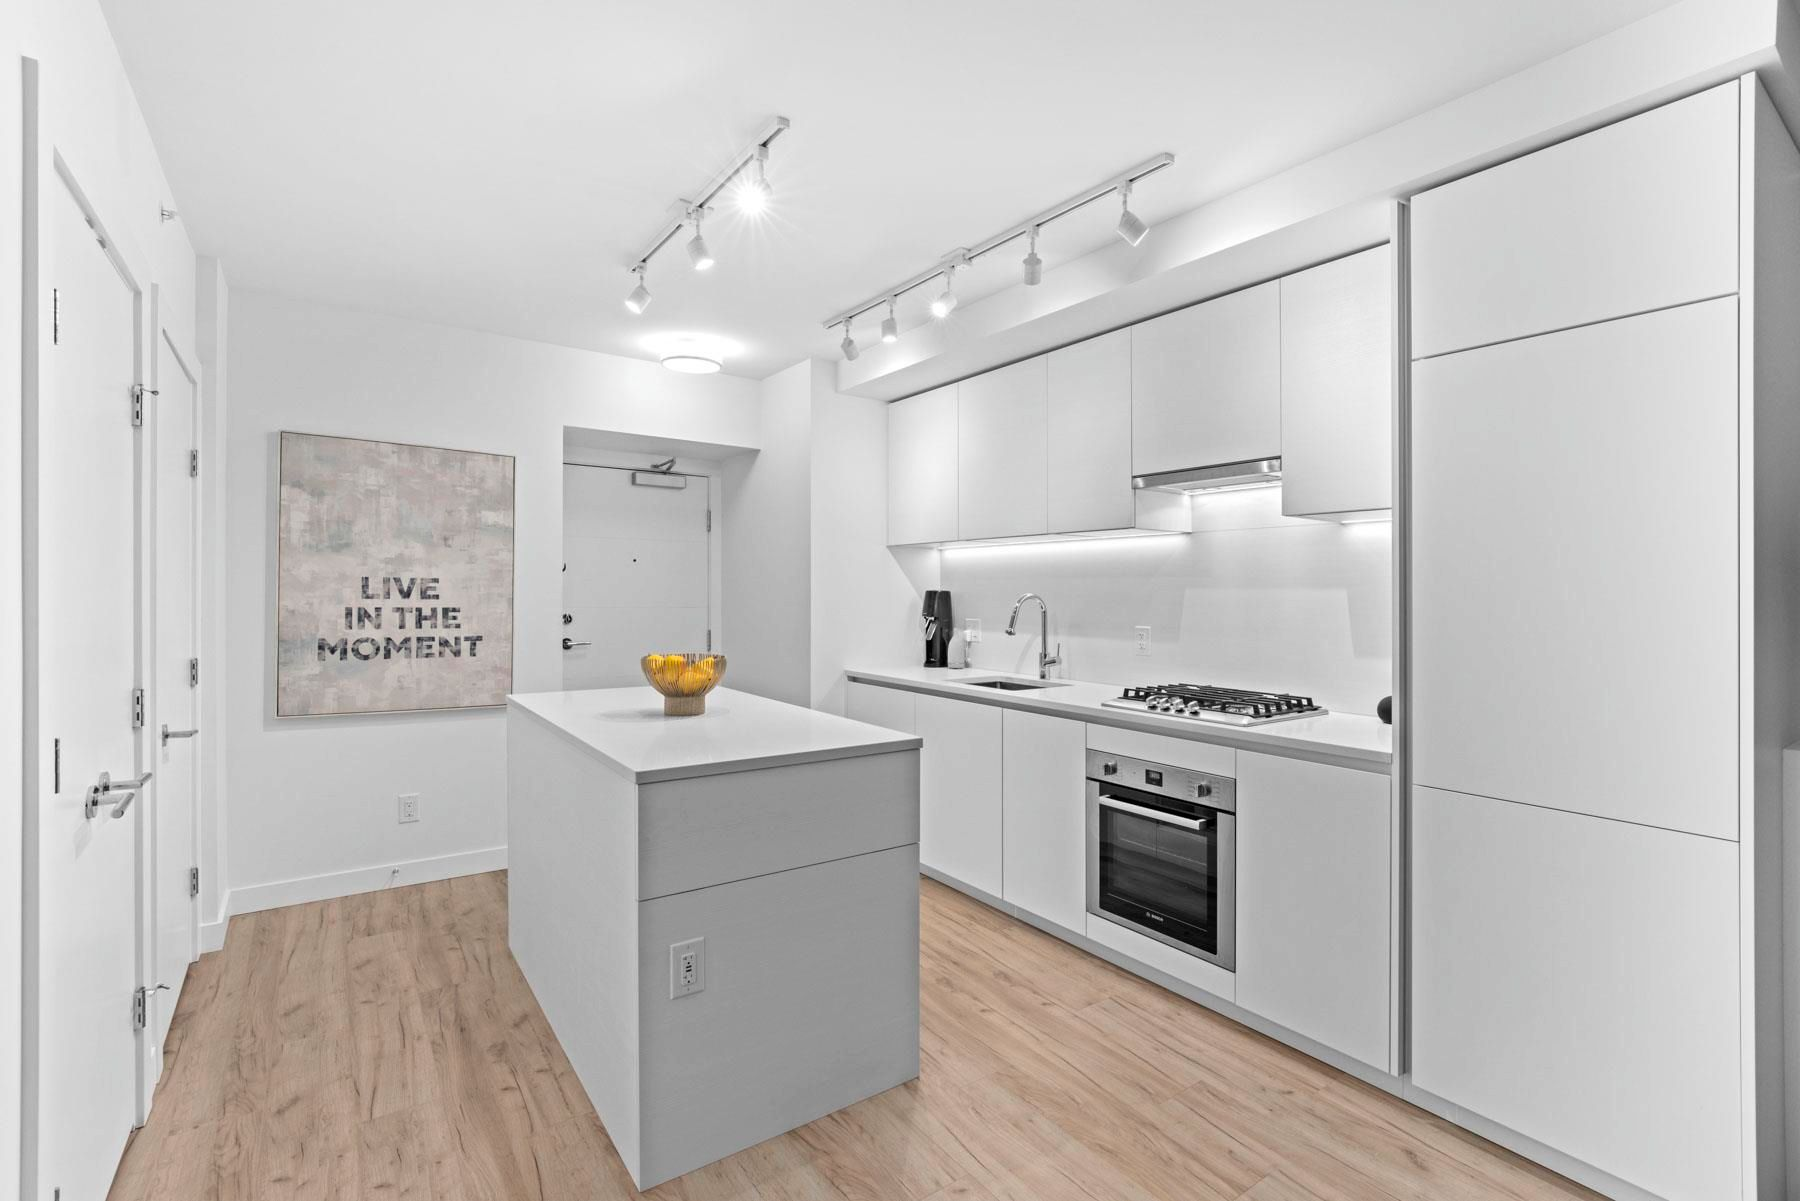 """Main Photo: 1506 652 WHITING Way in Coquitlam: Coquitlam West Condo for sale in """"Marquee - Lougheed Heights"""" : MLS®# R2610674"""